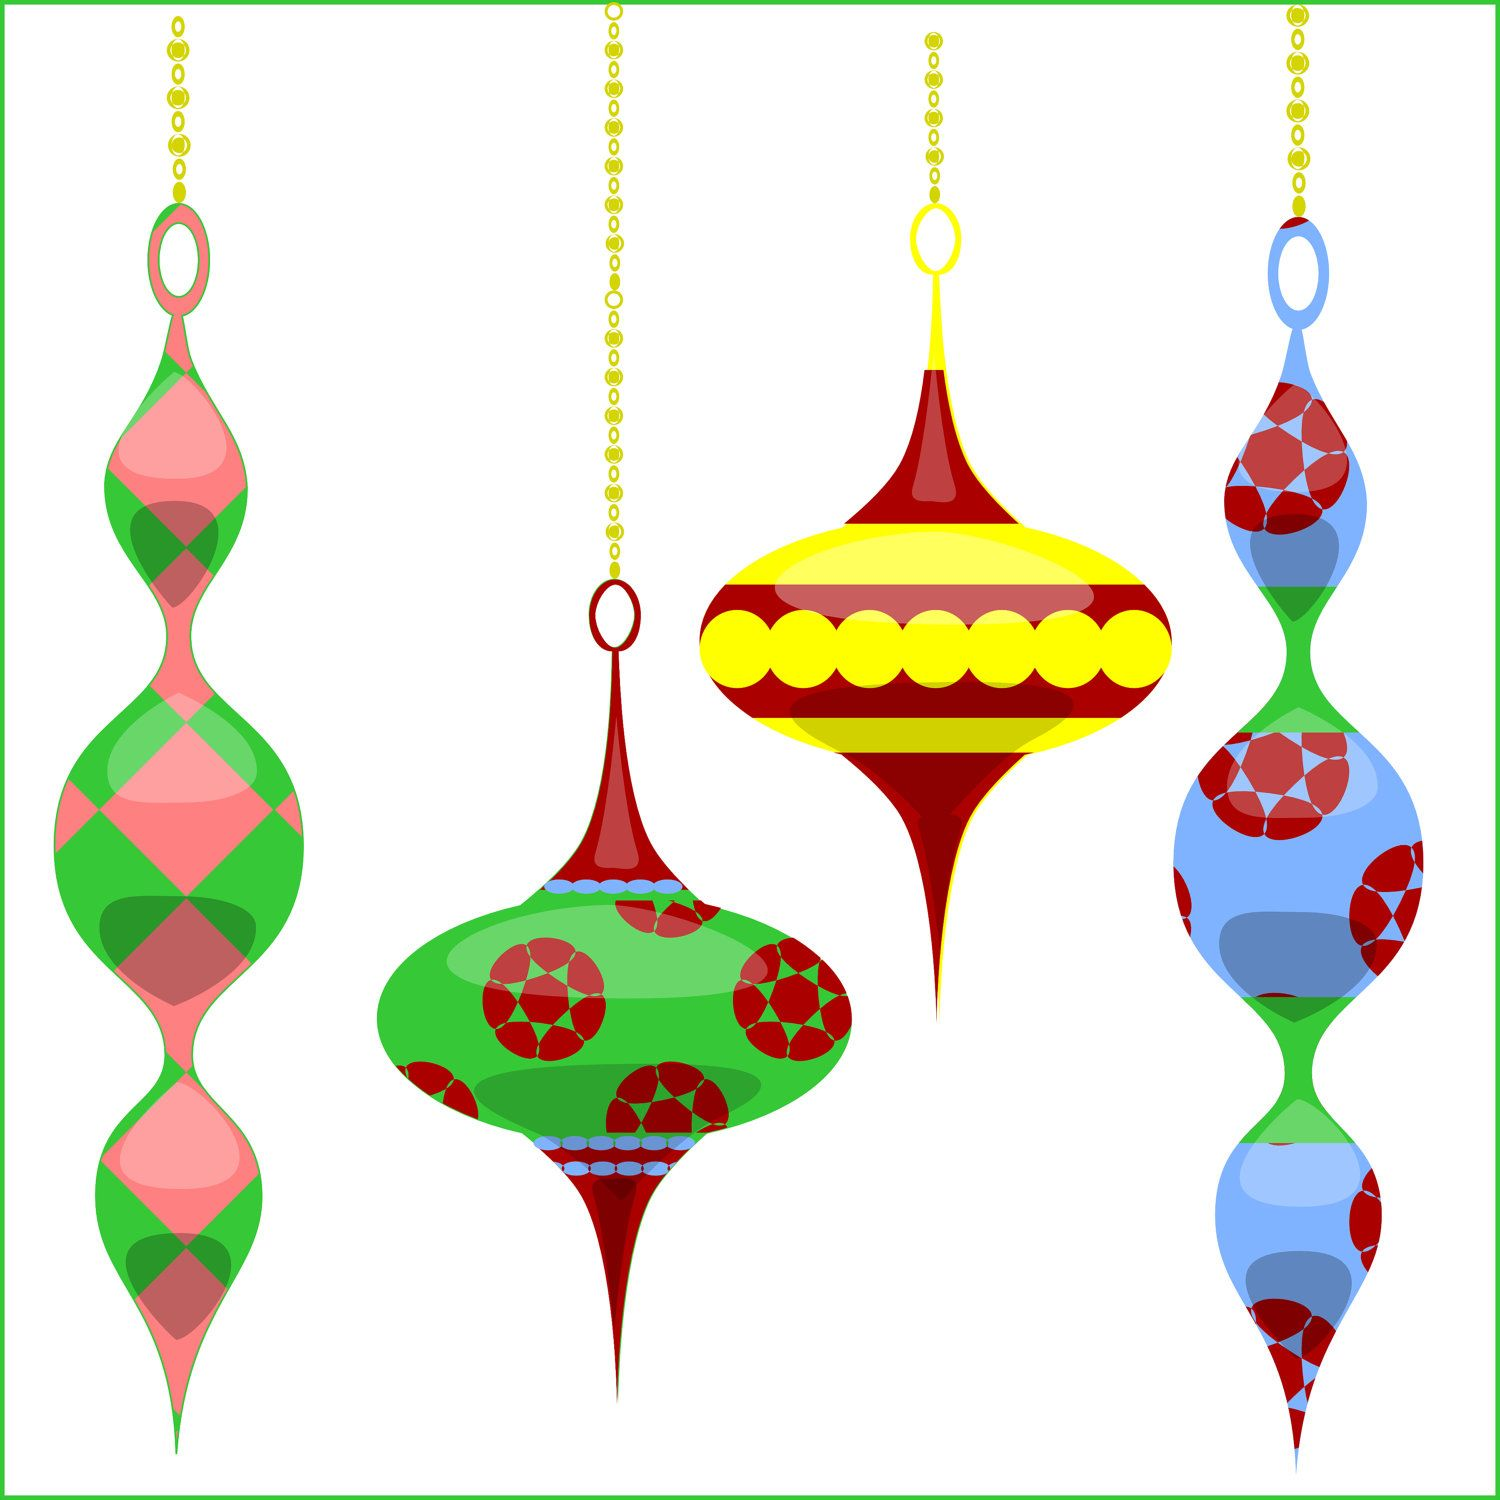 Ornaments clip art for. Ornament clipart christmas tree ornament graphic black and white